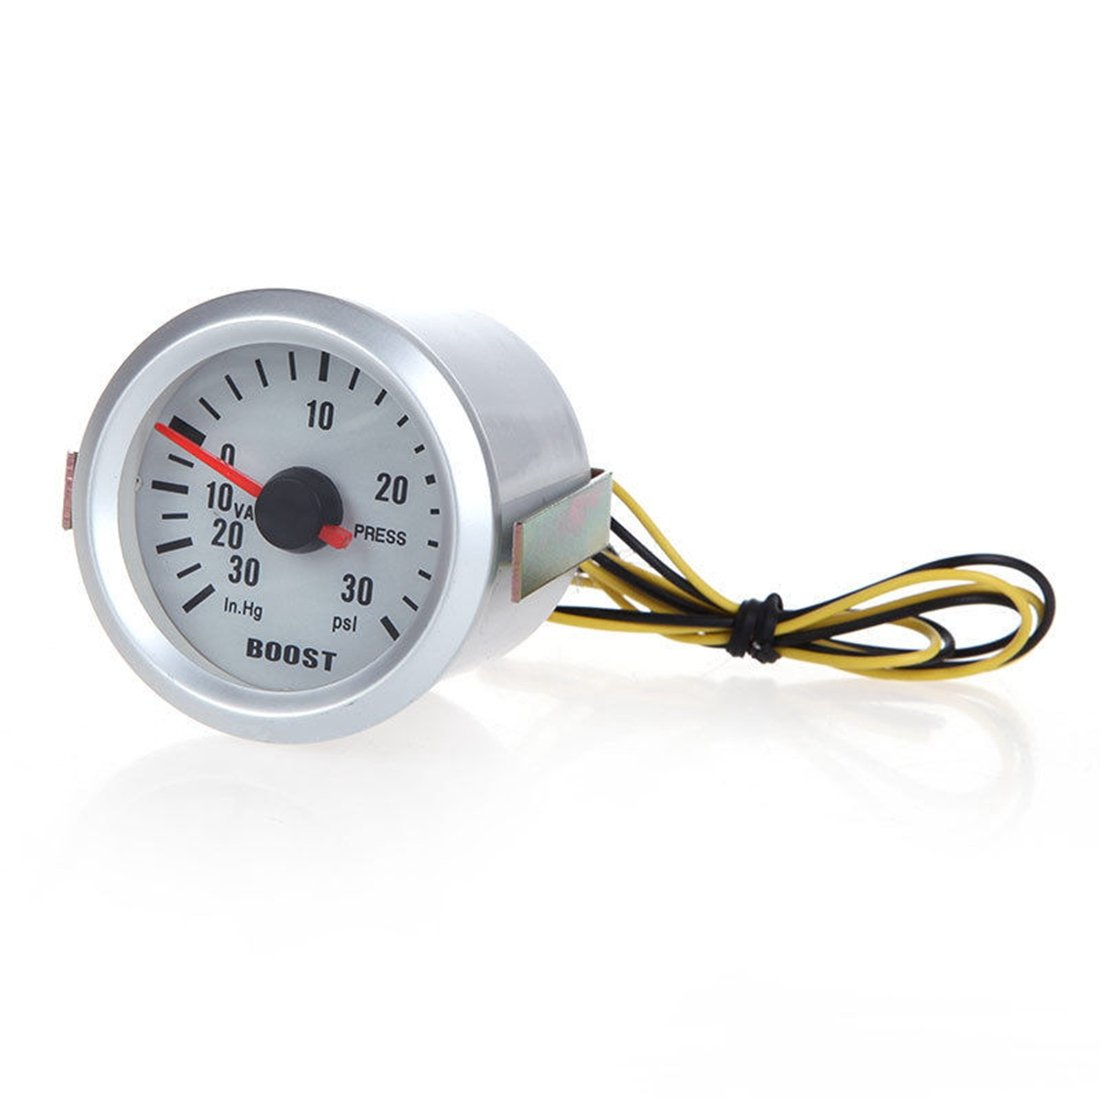 SODIAL(R) Universal Auto Car Turbo Boost Vacuum Press Gauge Meter 2' 52mm 0-30 PSI New 068325